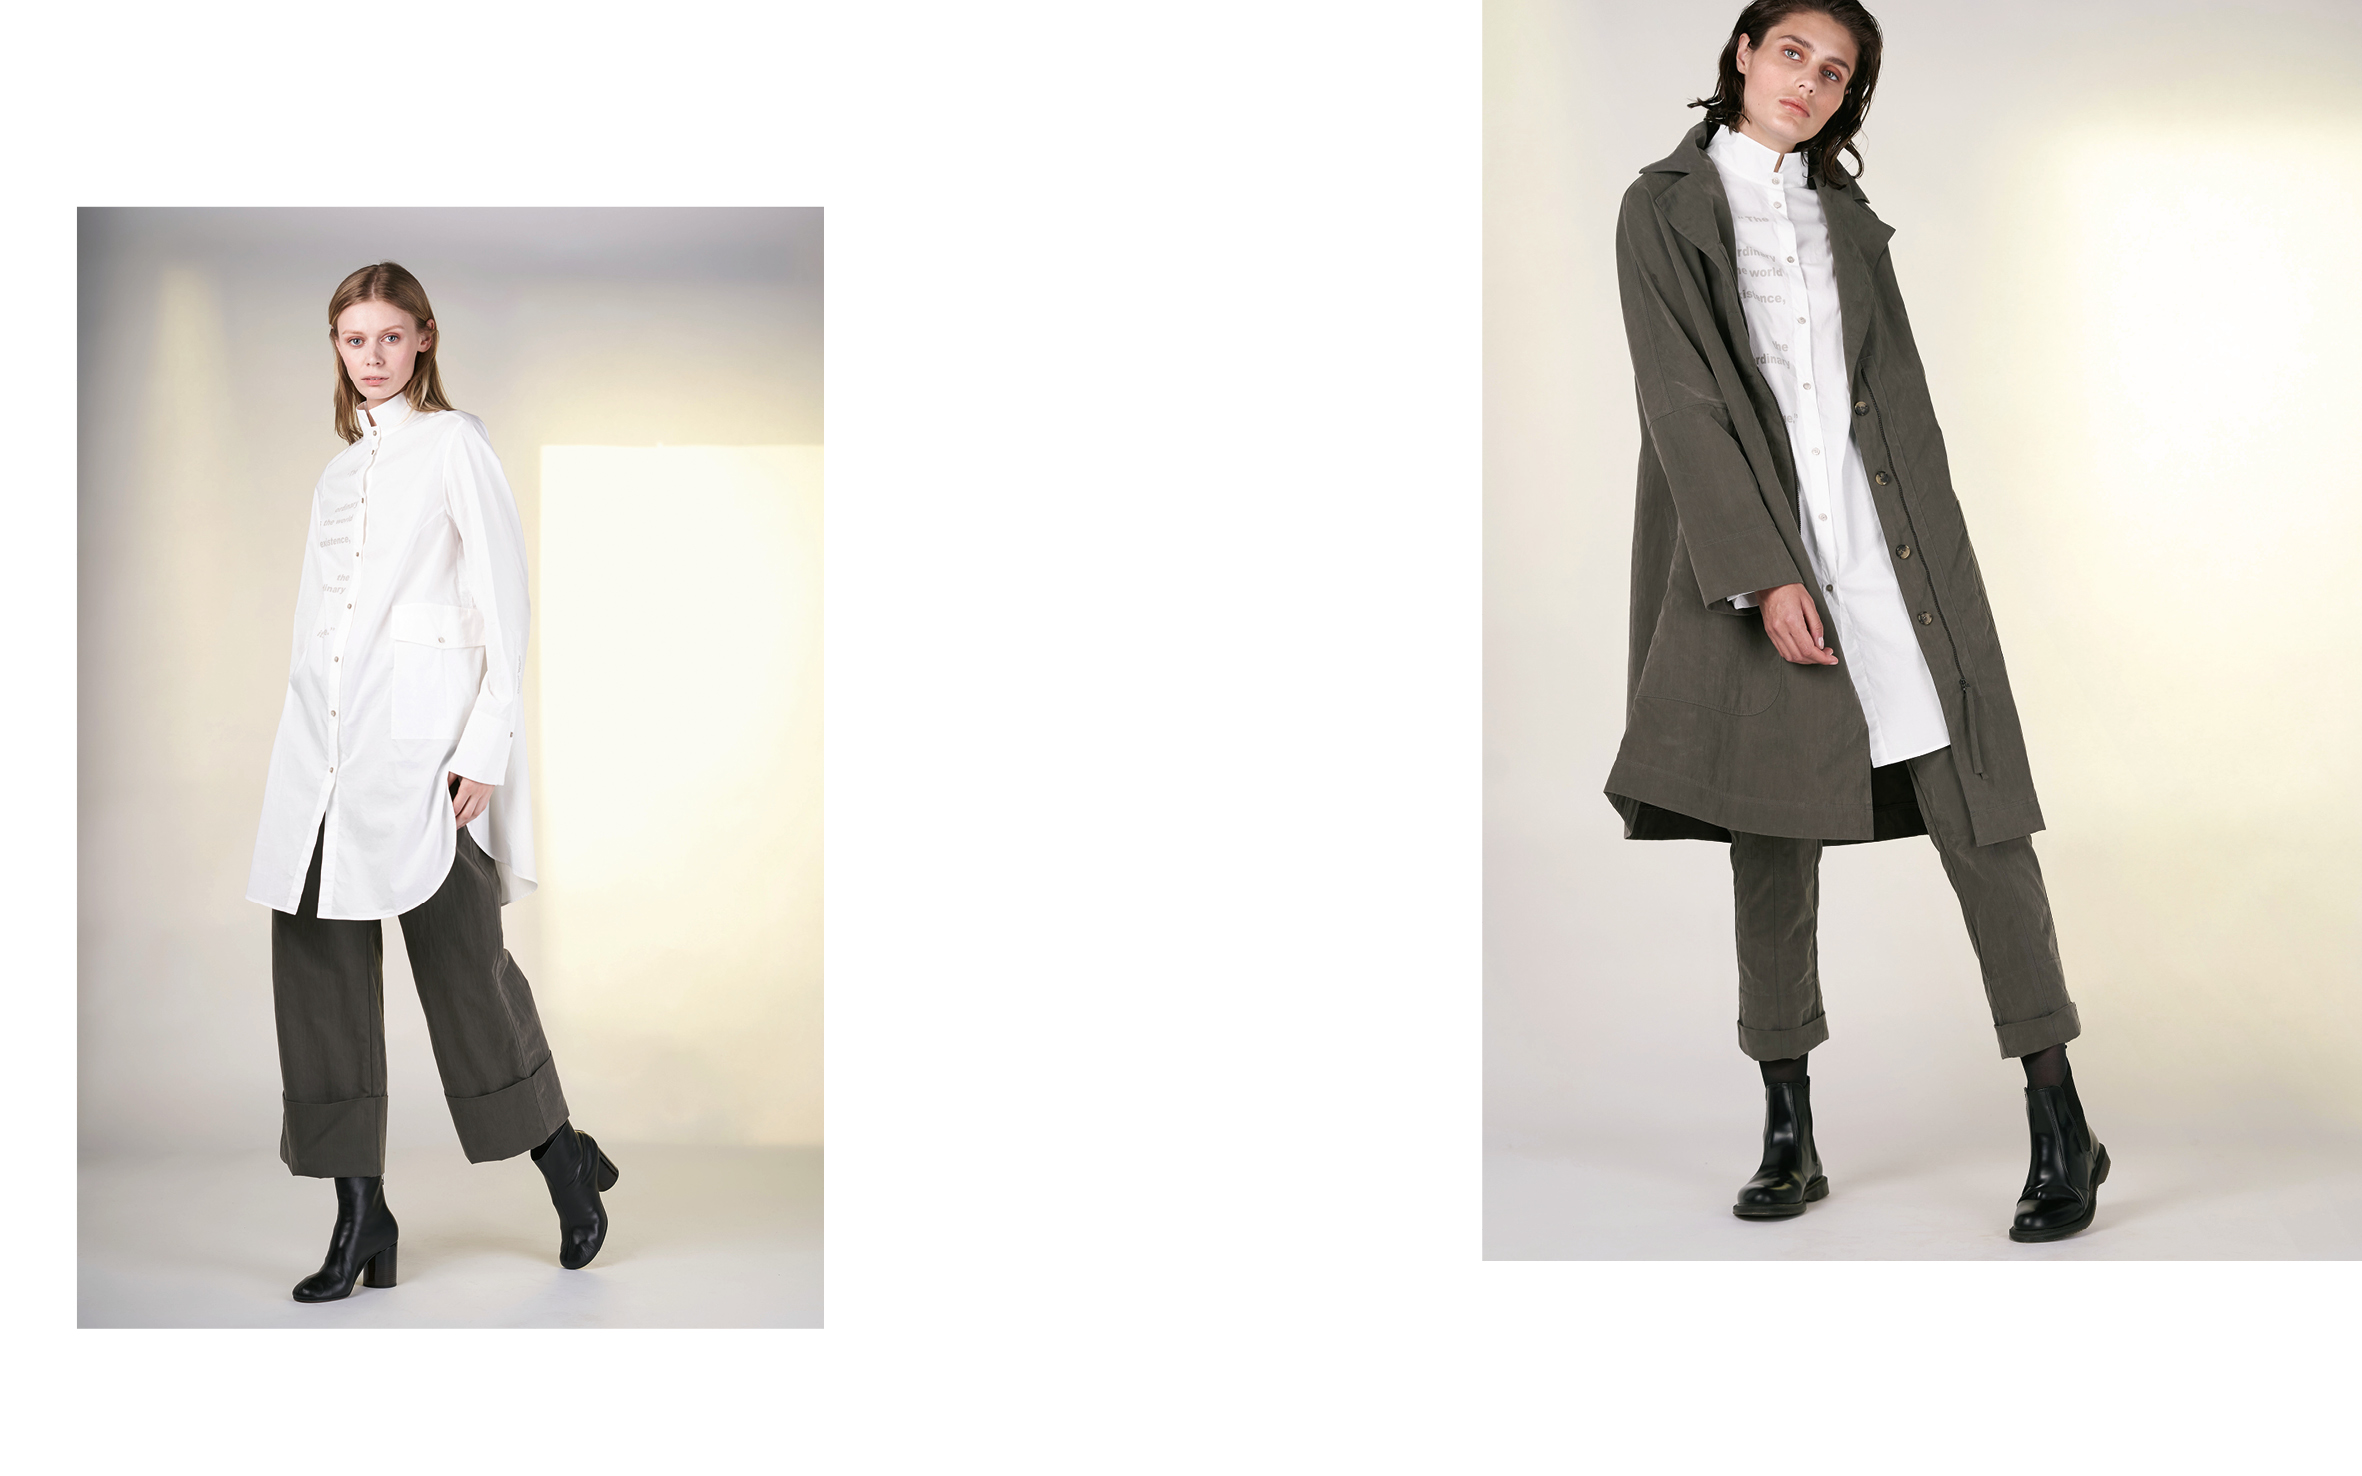 LEFT: blouse TELLY 1 27150-01 | pants DEIK 27104-03  RIGHT: coat DENIS 27104-03 | blouse TELLY 1 27150-01 | pants DENZ 27104-03